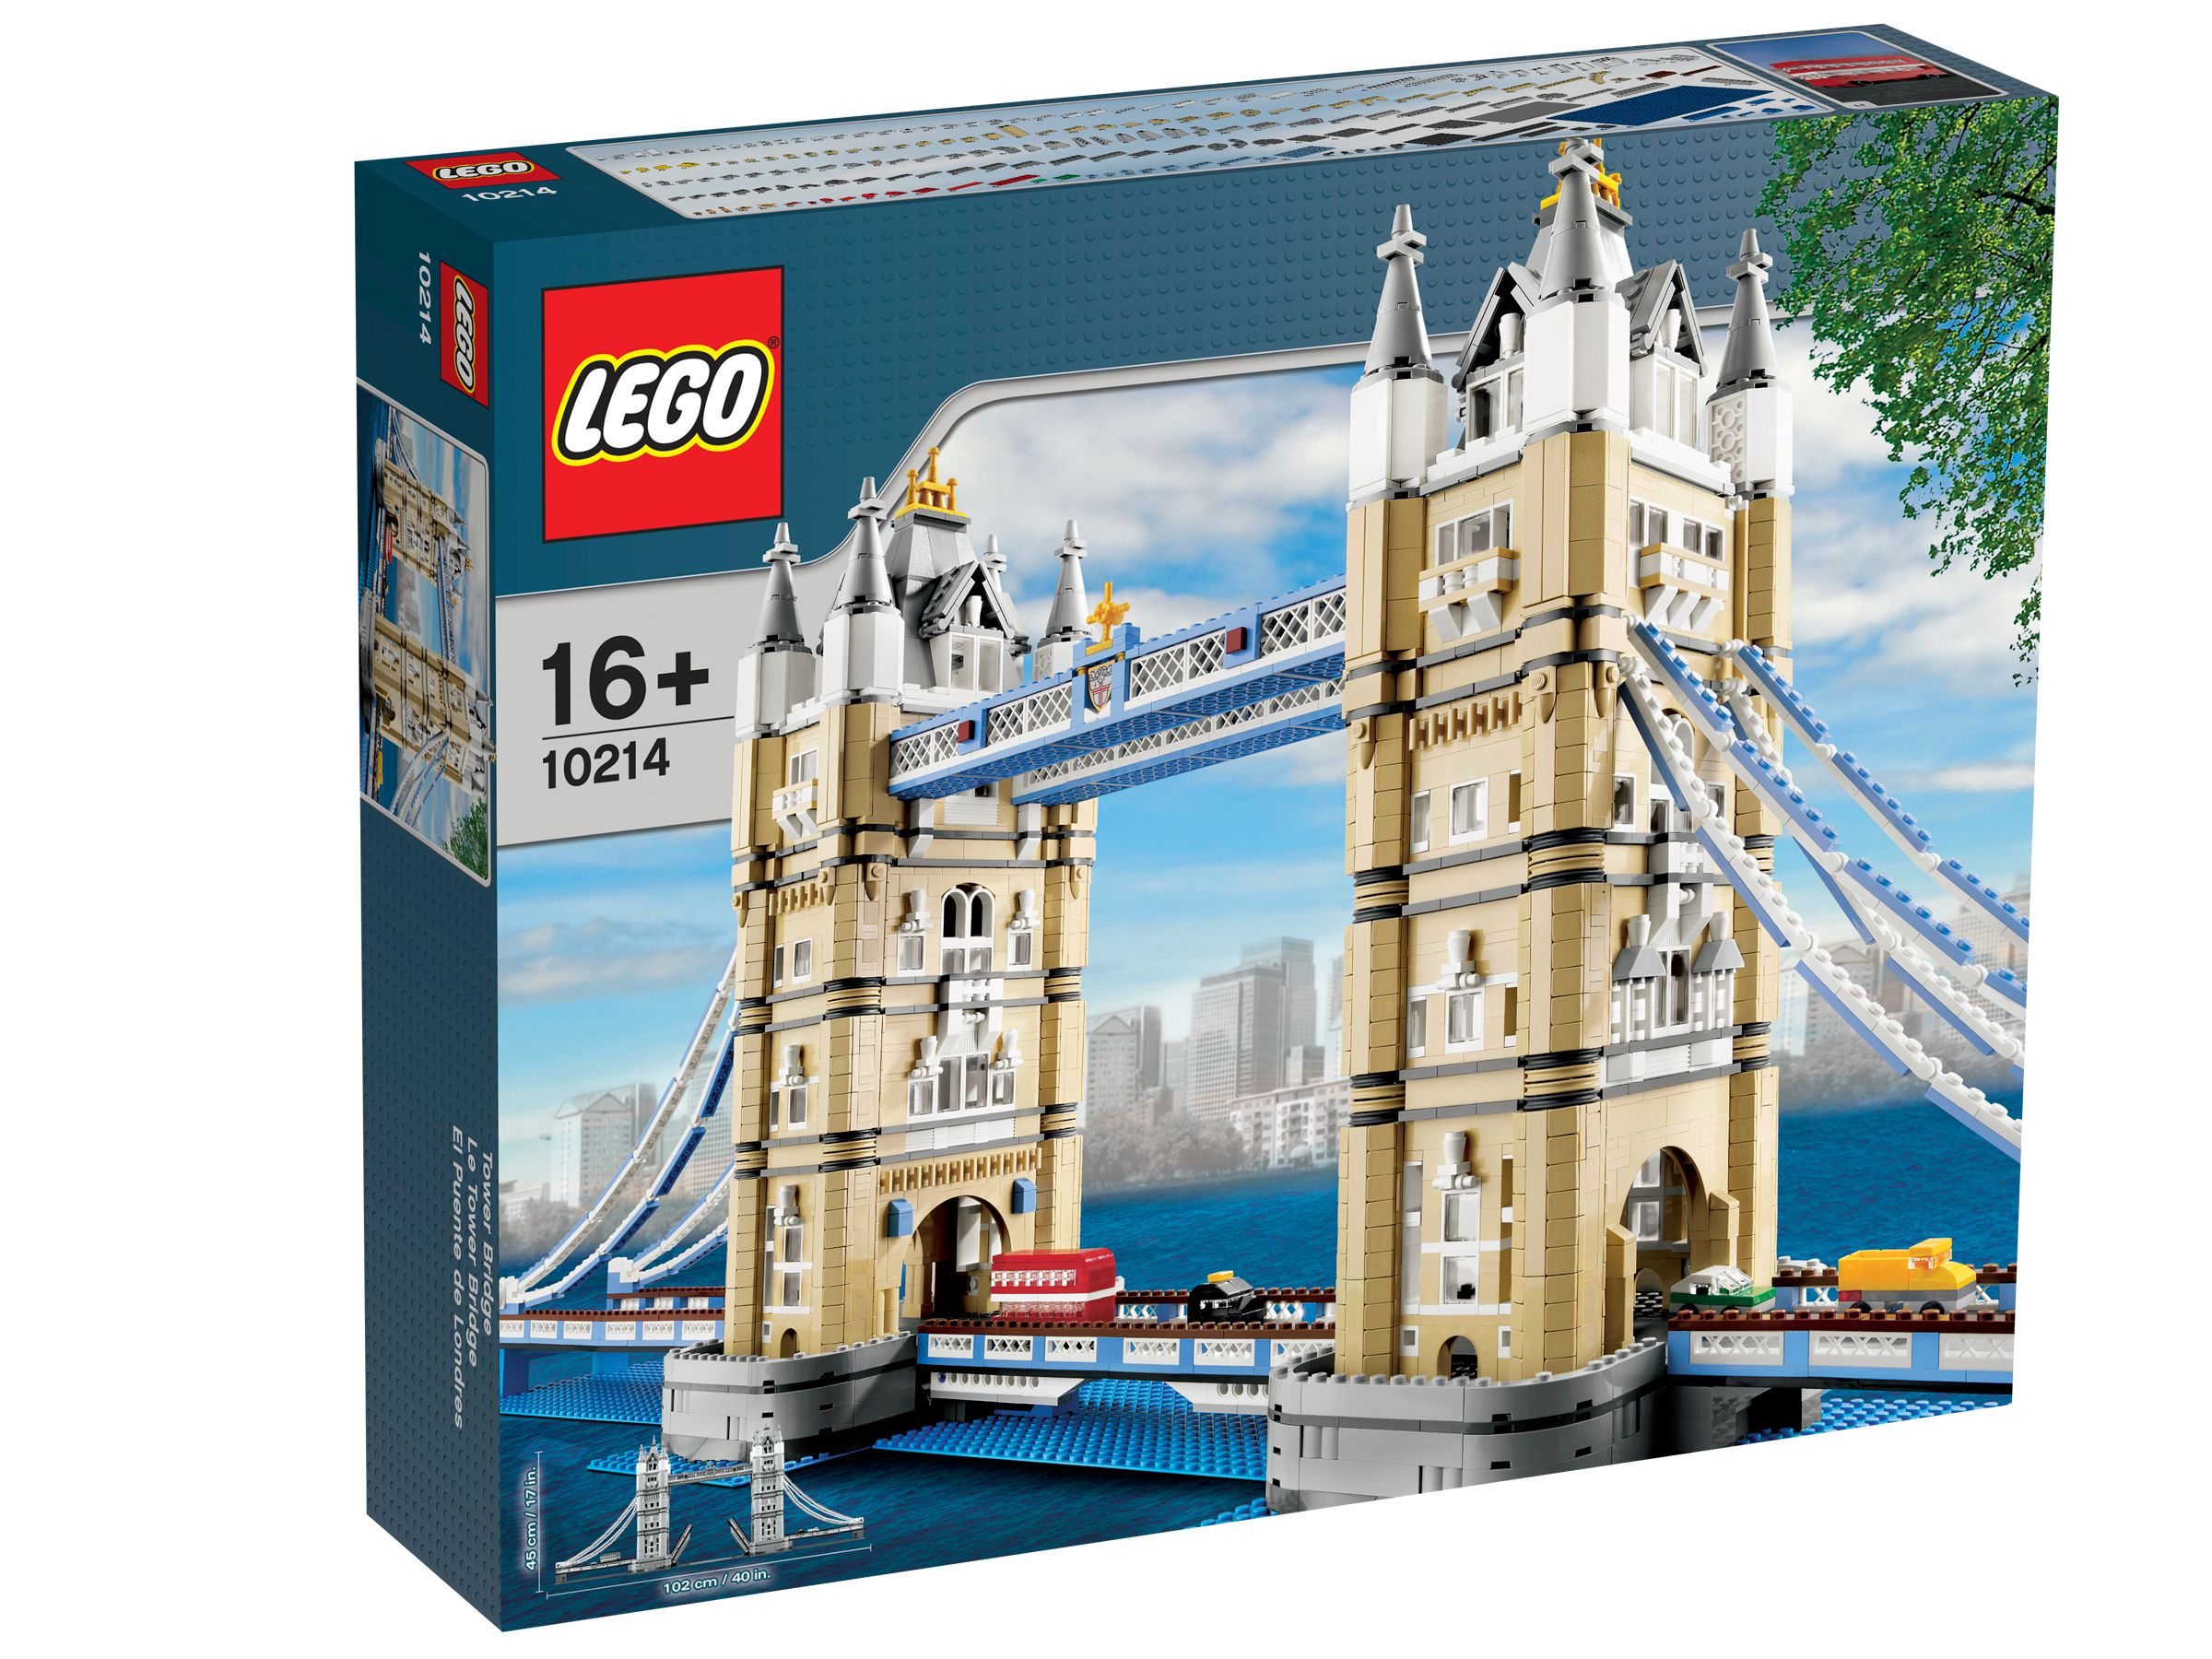 LEGO Advanced Models 10214 Tower Bridge LEGO_10214_alt1.jpg